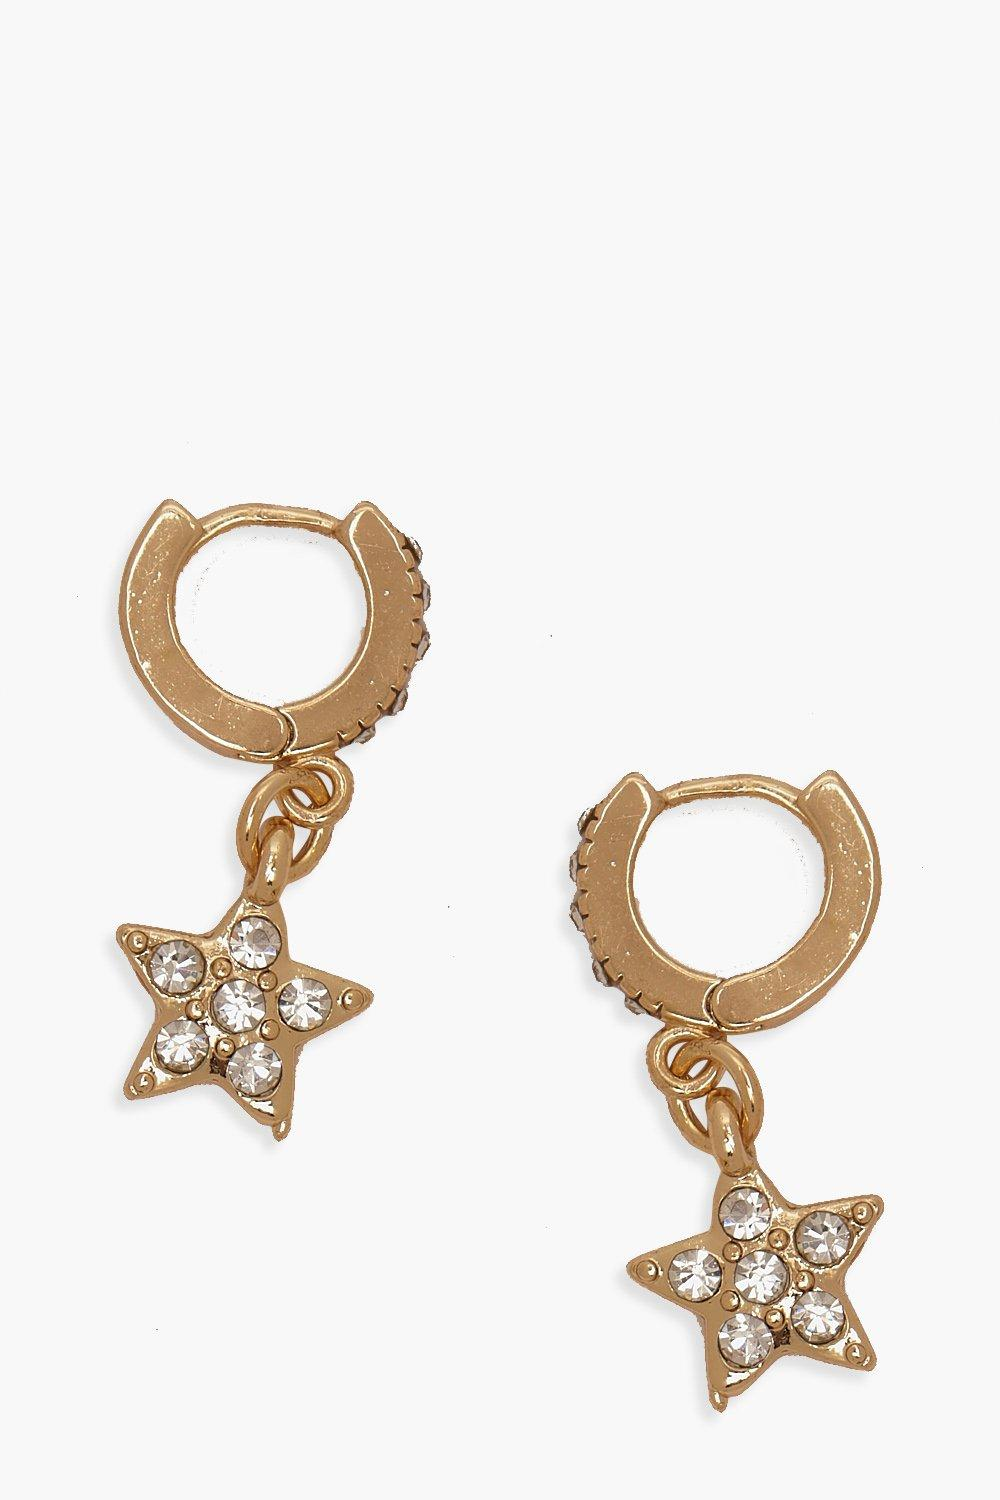 boohoo Womens Diamante Star Huggie Hoop Earrings - Metallics - One Size, Metallics